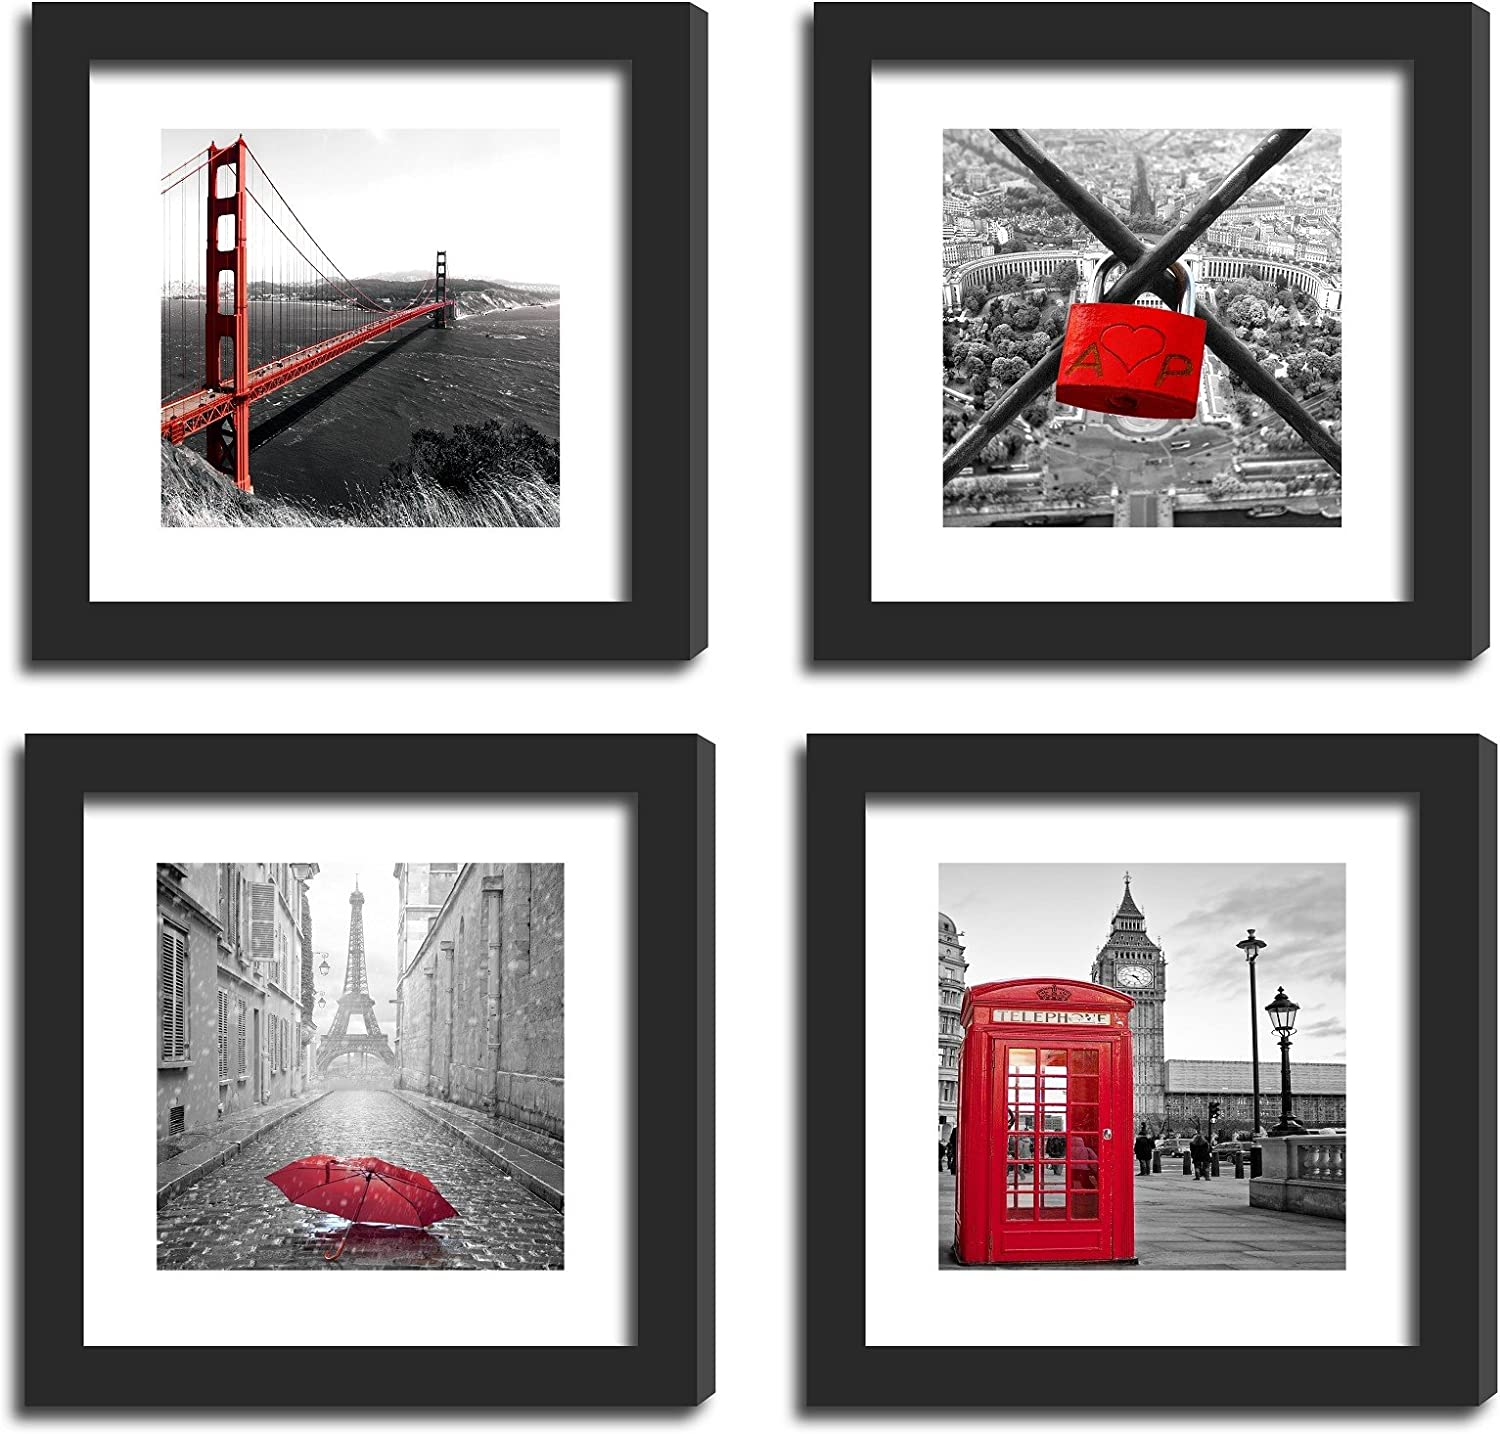 Cheap sale SmartWallStation 4Pcs 11x11 Real Glass Frame 2X Wood Albuquerque Mall Black with